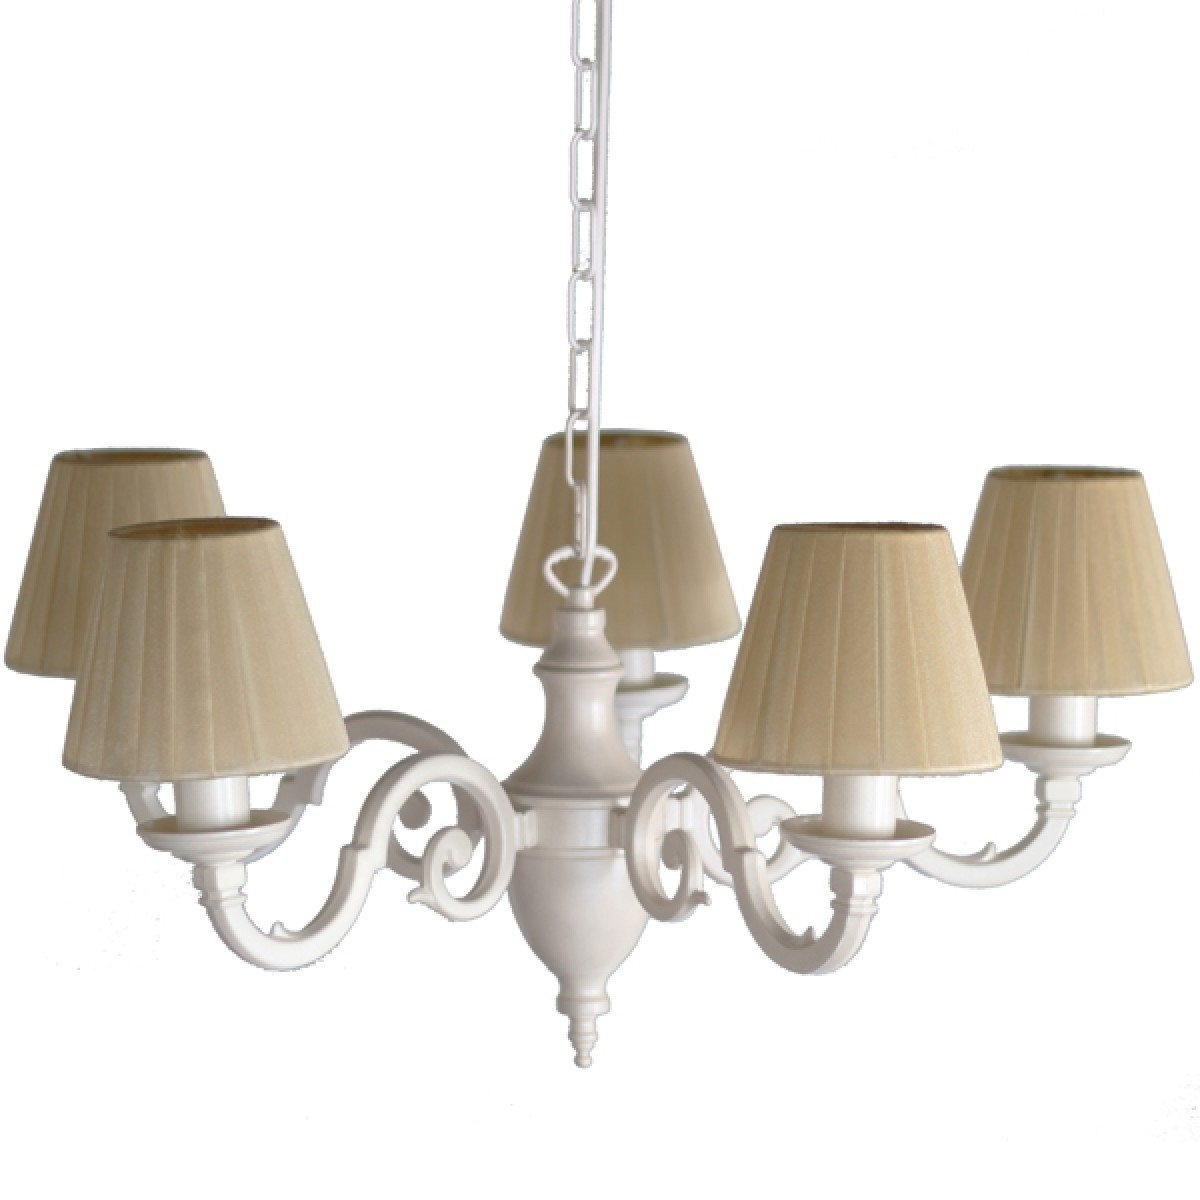 Cream Chandeliers Pertaining To Well Known Bedroom Light Fitting Chandelier (View 4 of 15)